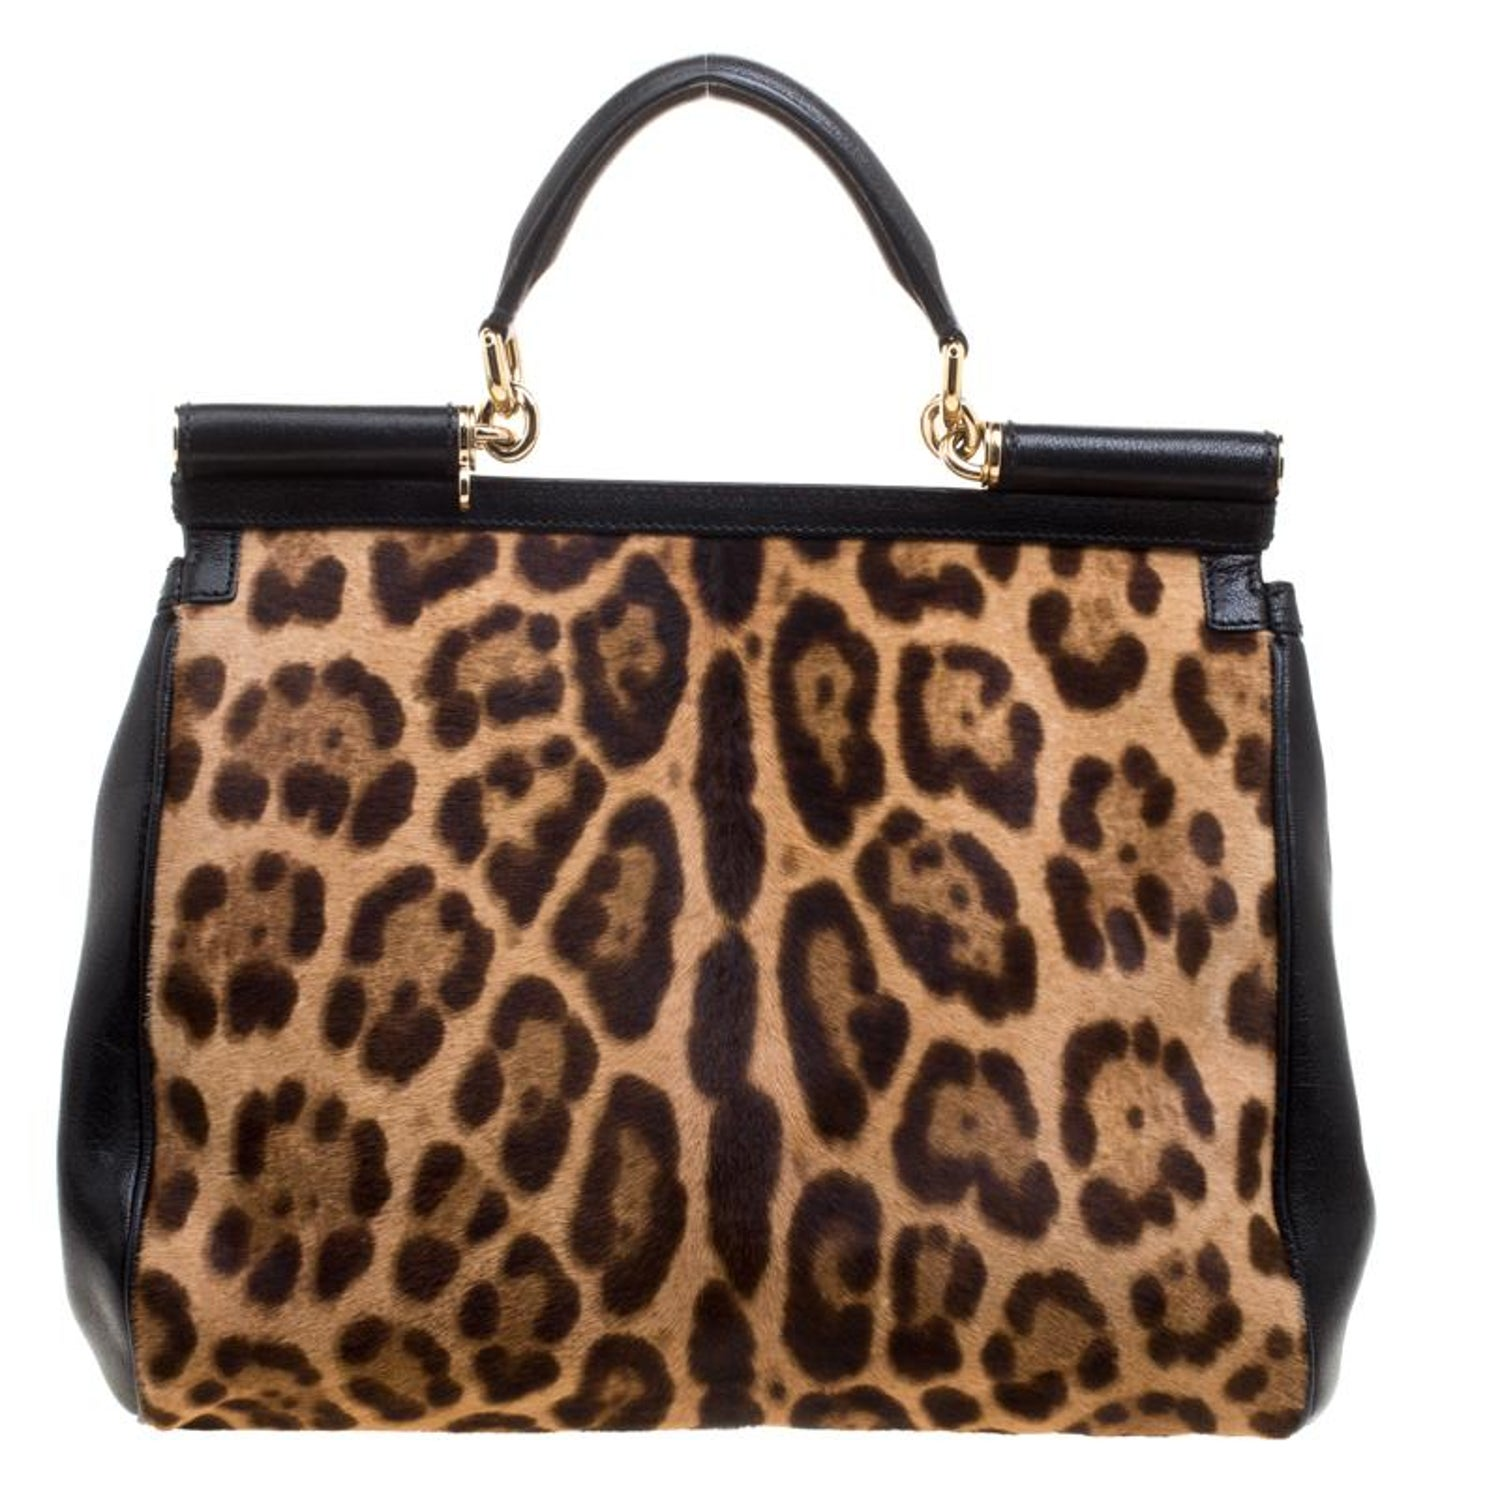 db3e20126c2d Dolce and Gabbana Black Leopard Print Calf Hair and Crochet Miss Sicily  Tote at 1stdibs